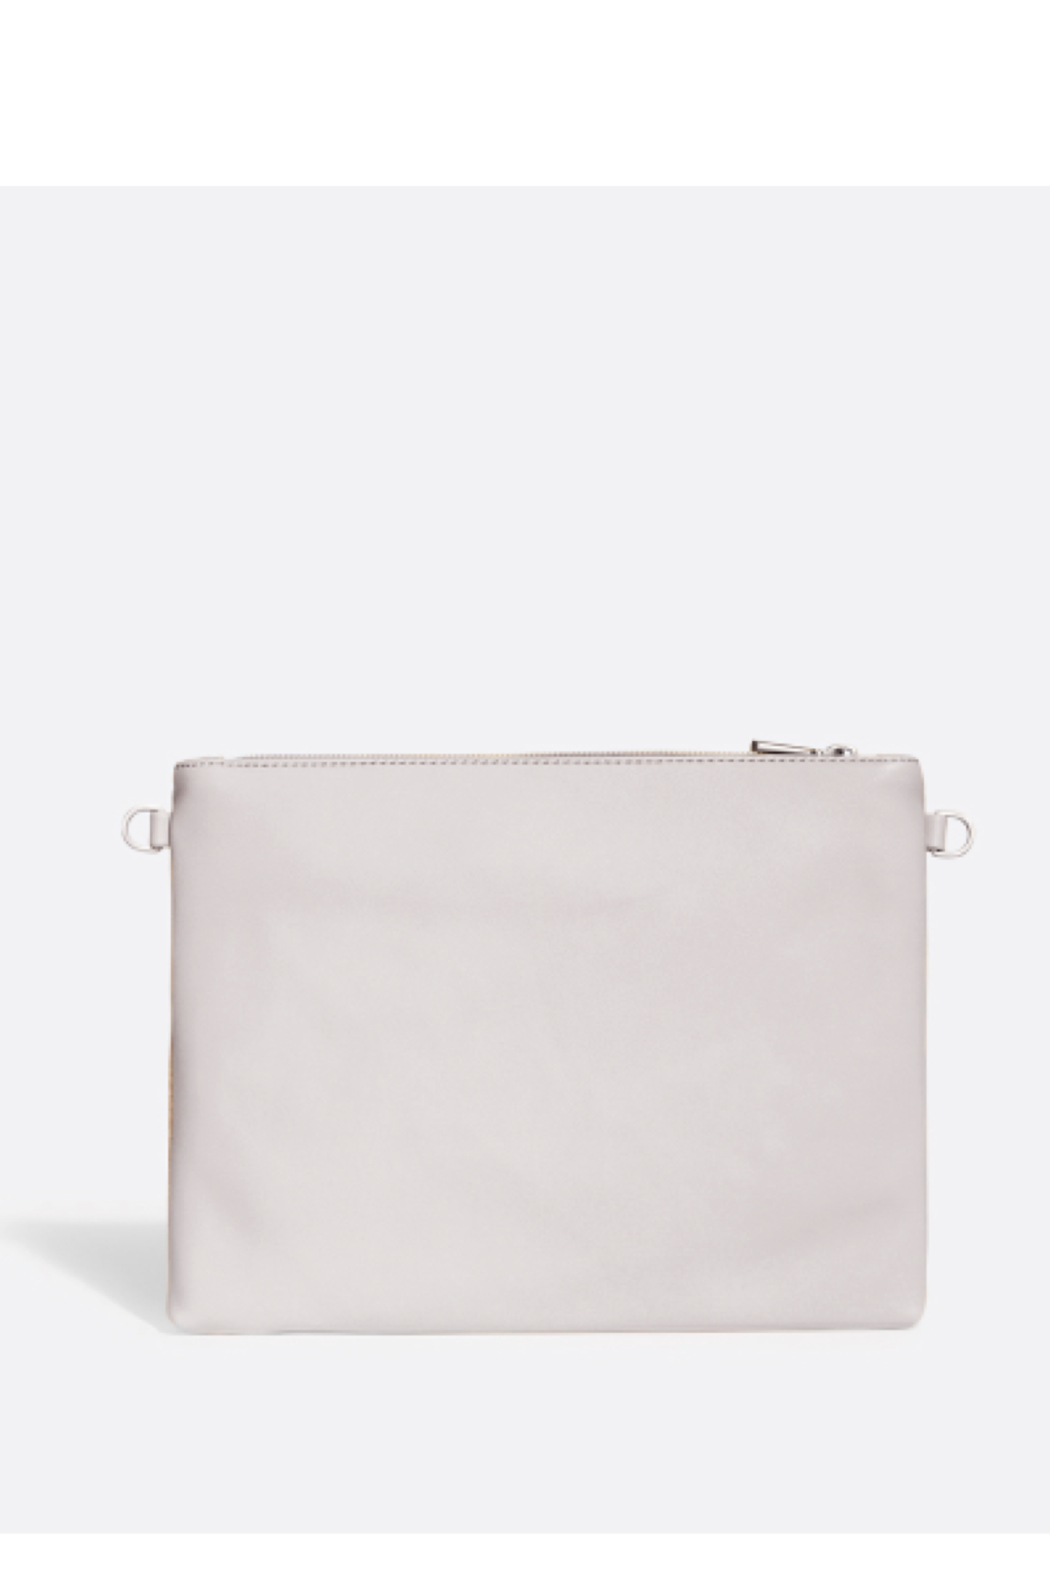 Pixie Mood Nicole Pouch Large – Cloud / Cork - Front Full Image